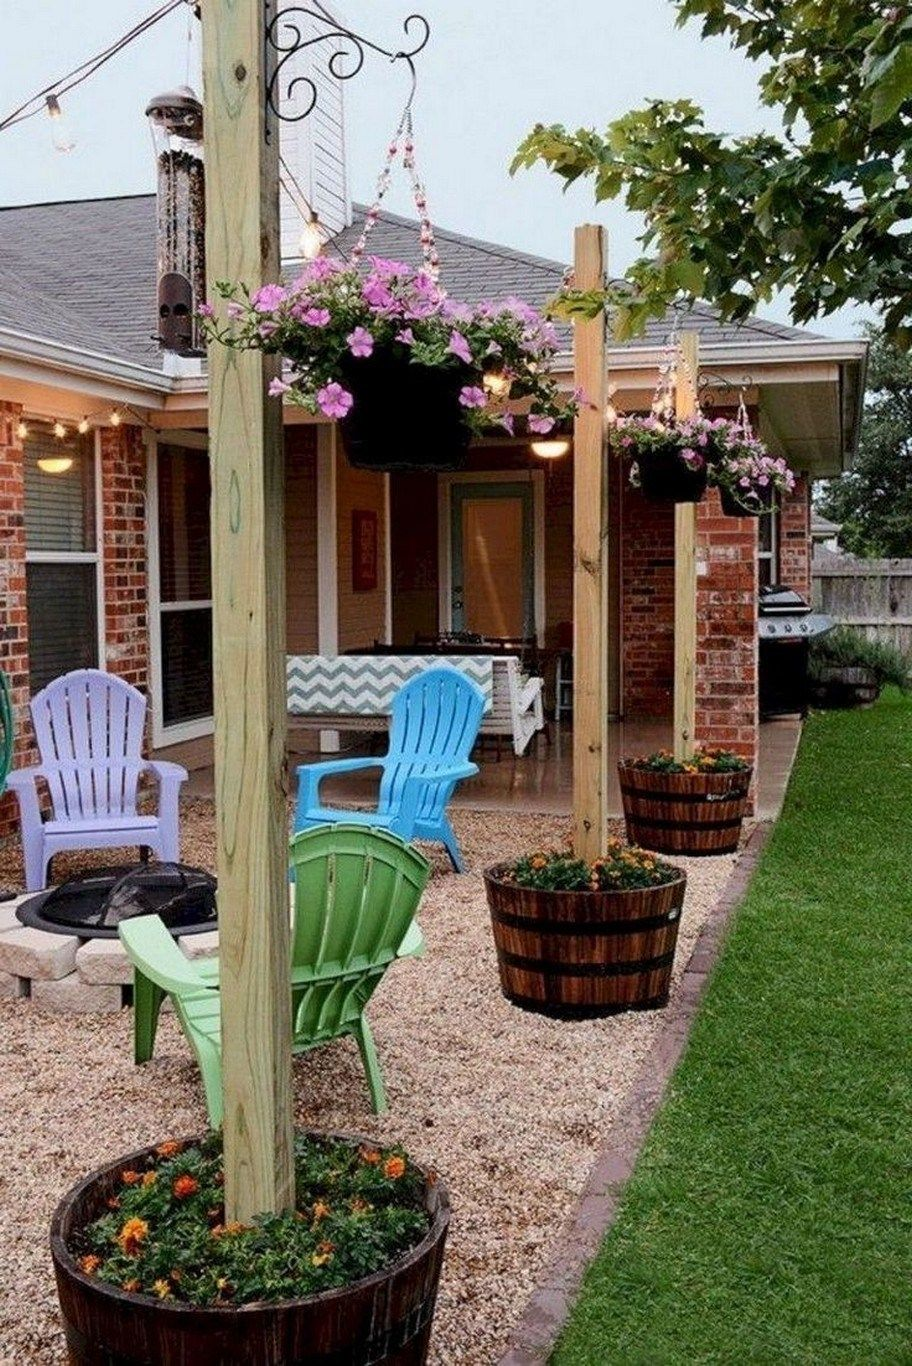 Home Insurance What Does It Cover And Not Cover Home Designs Inexpensive Backyard Ideas Small Backyard Landscaping Backyard Diy Projects